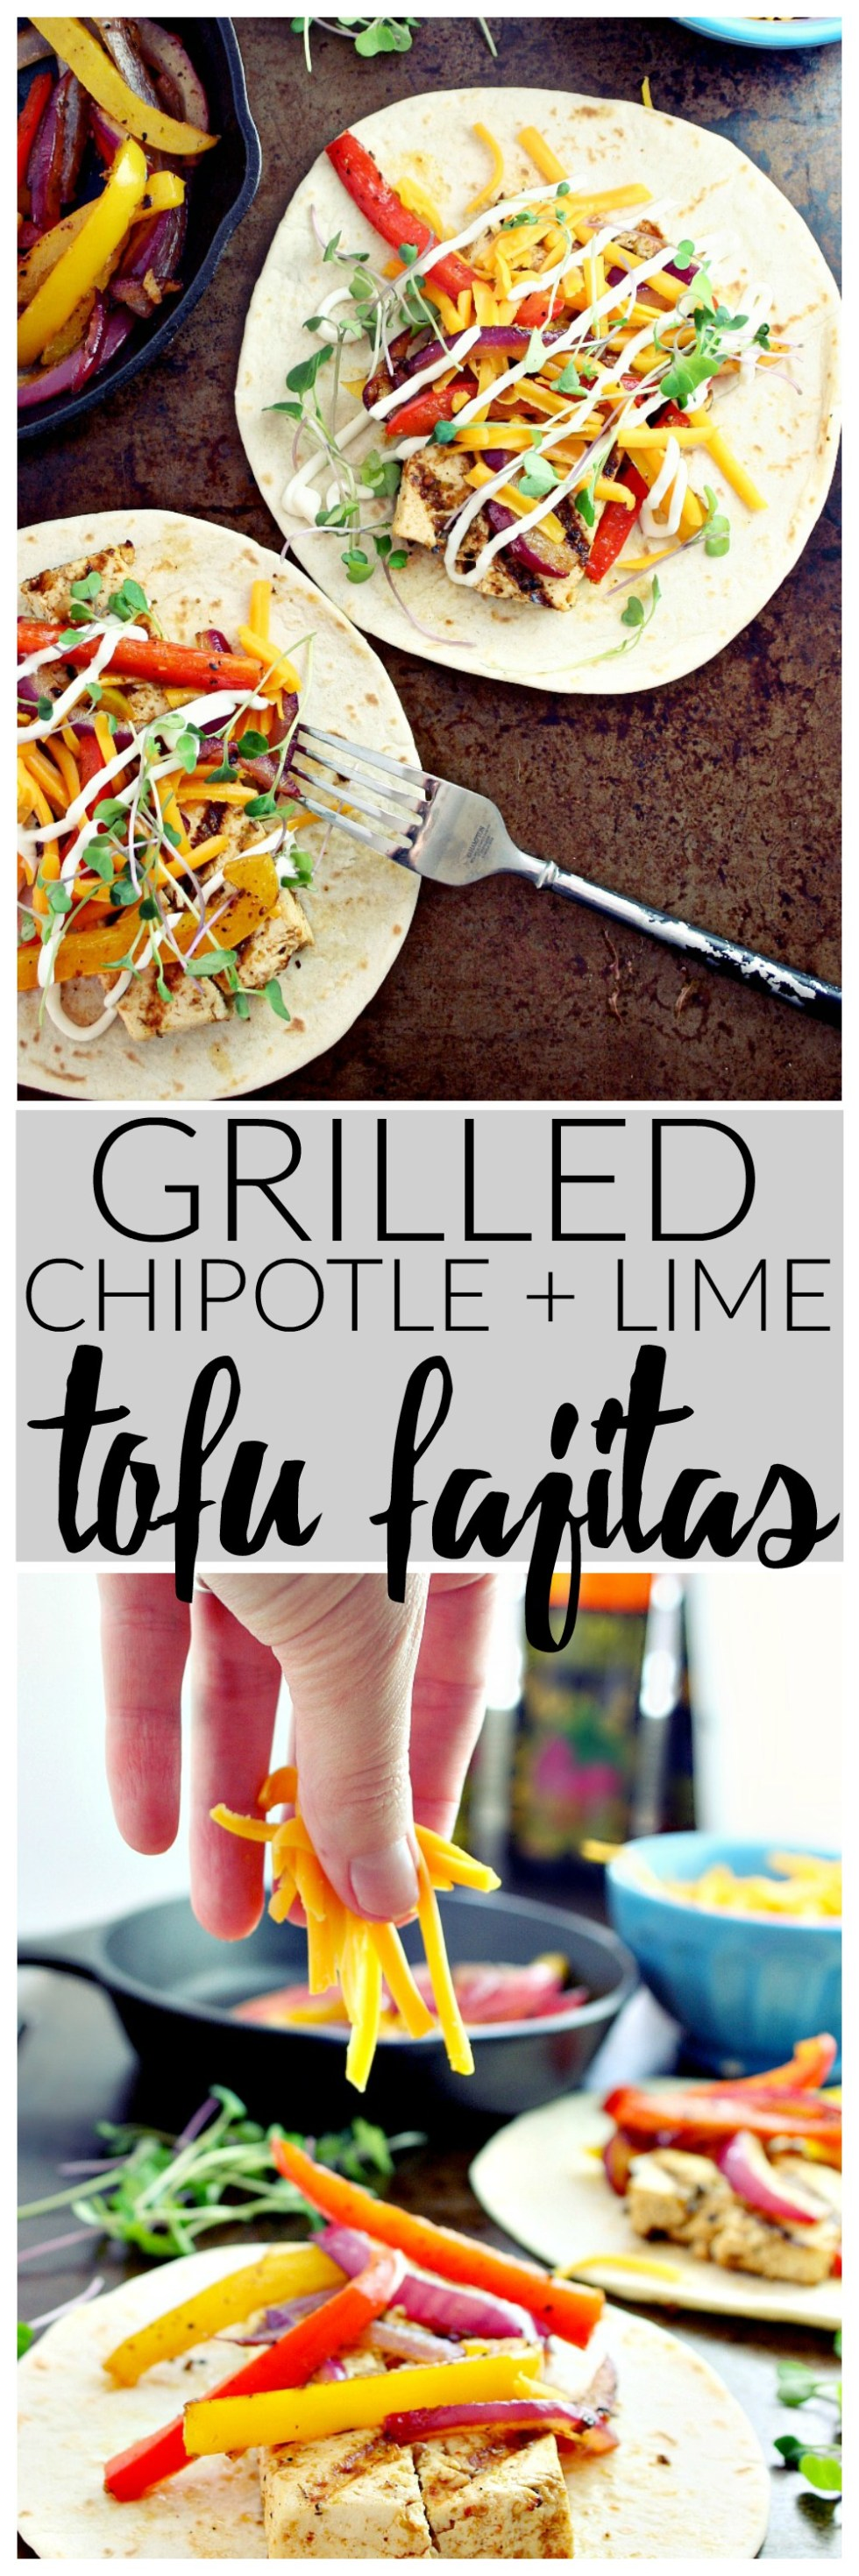 Grilled Chipotle and Lime Tofu Fajitas | Killing Thyme